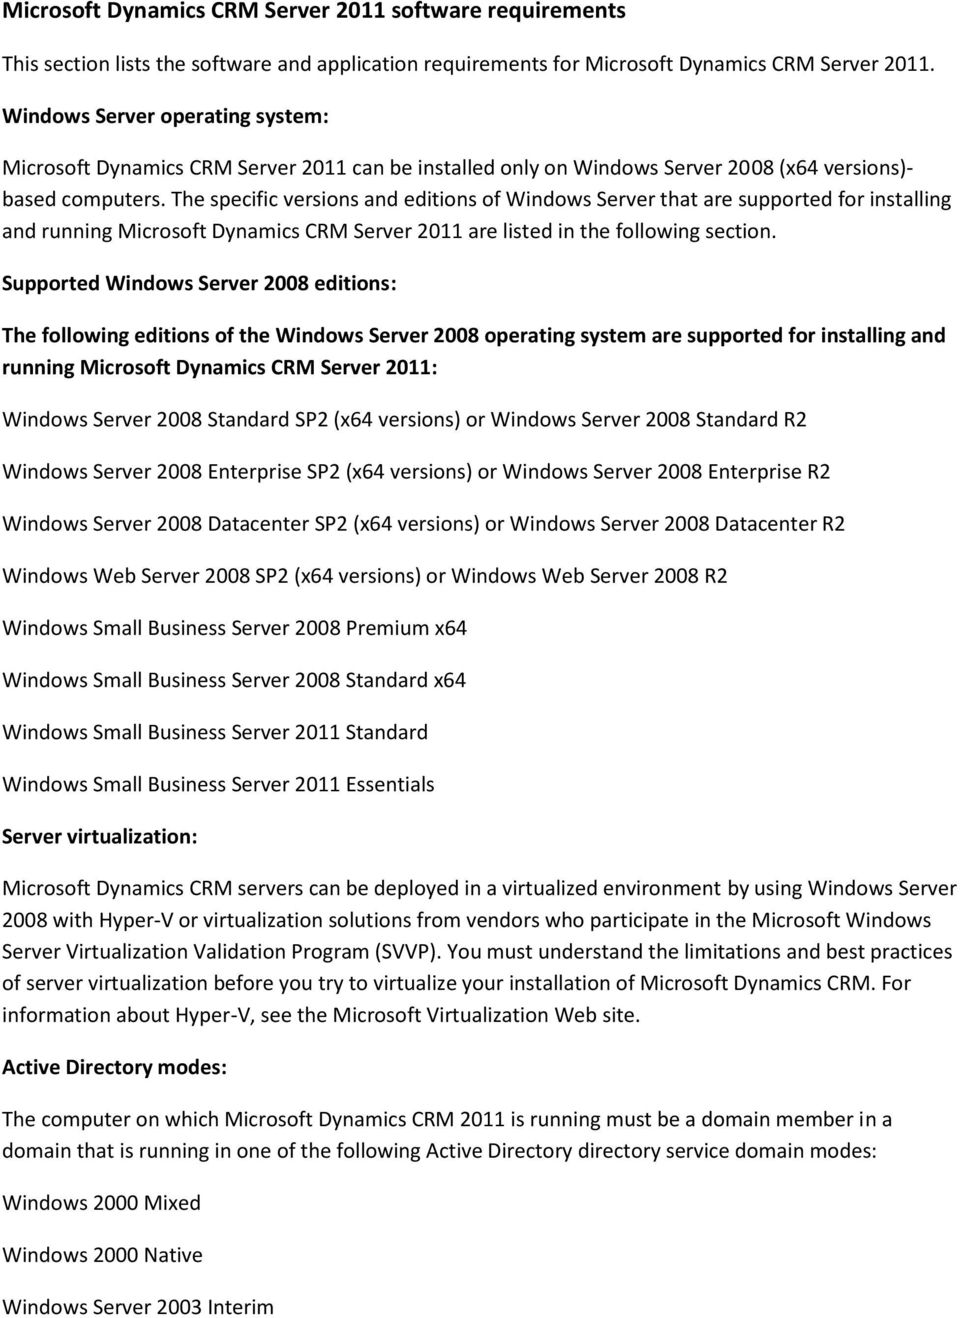 The specific versions and editions of Windows Server that are supported for installing and running Microsoft Dynamics CRM Server 2011 are listed in the following section.